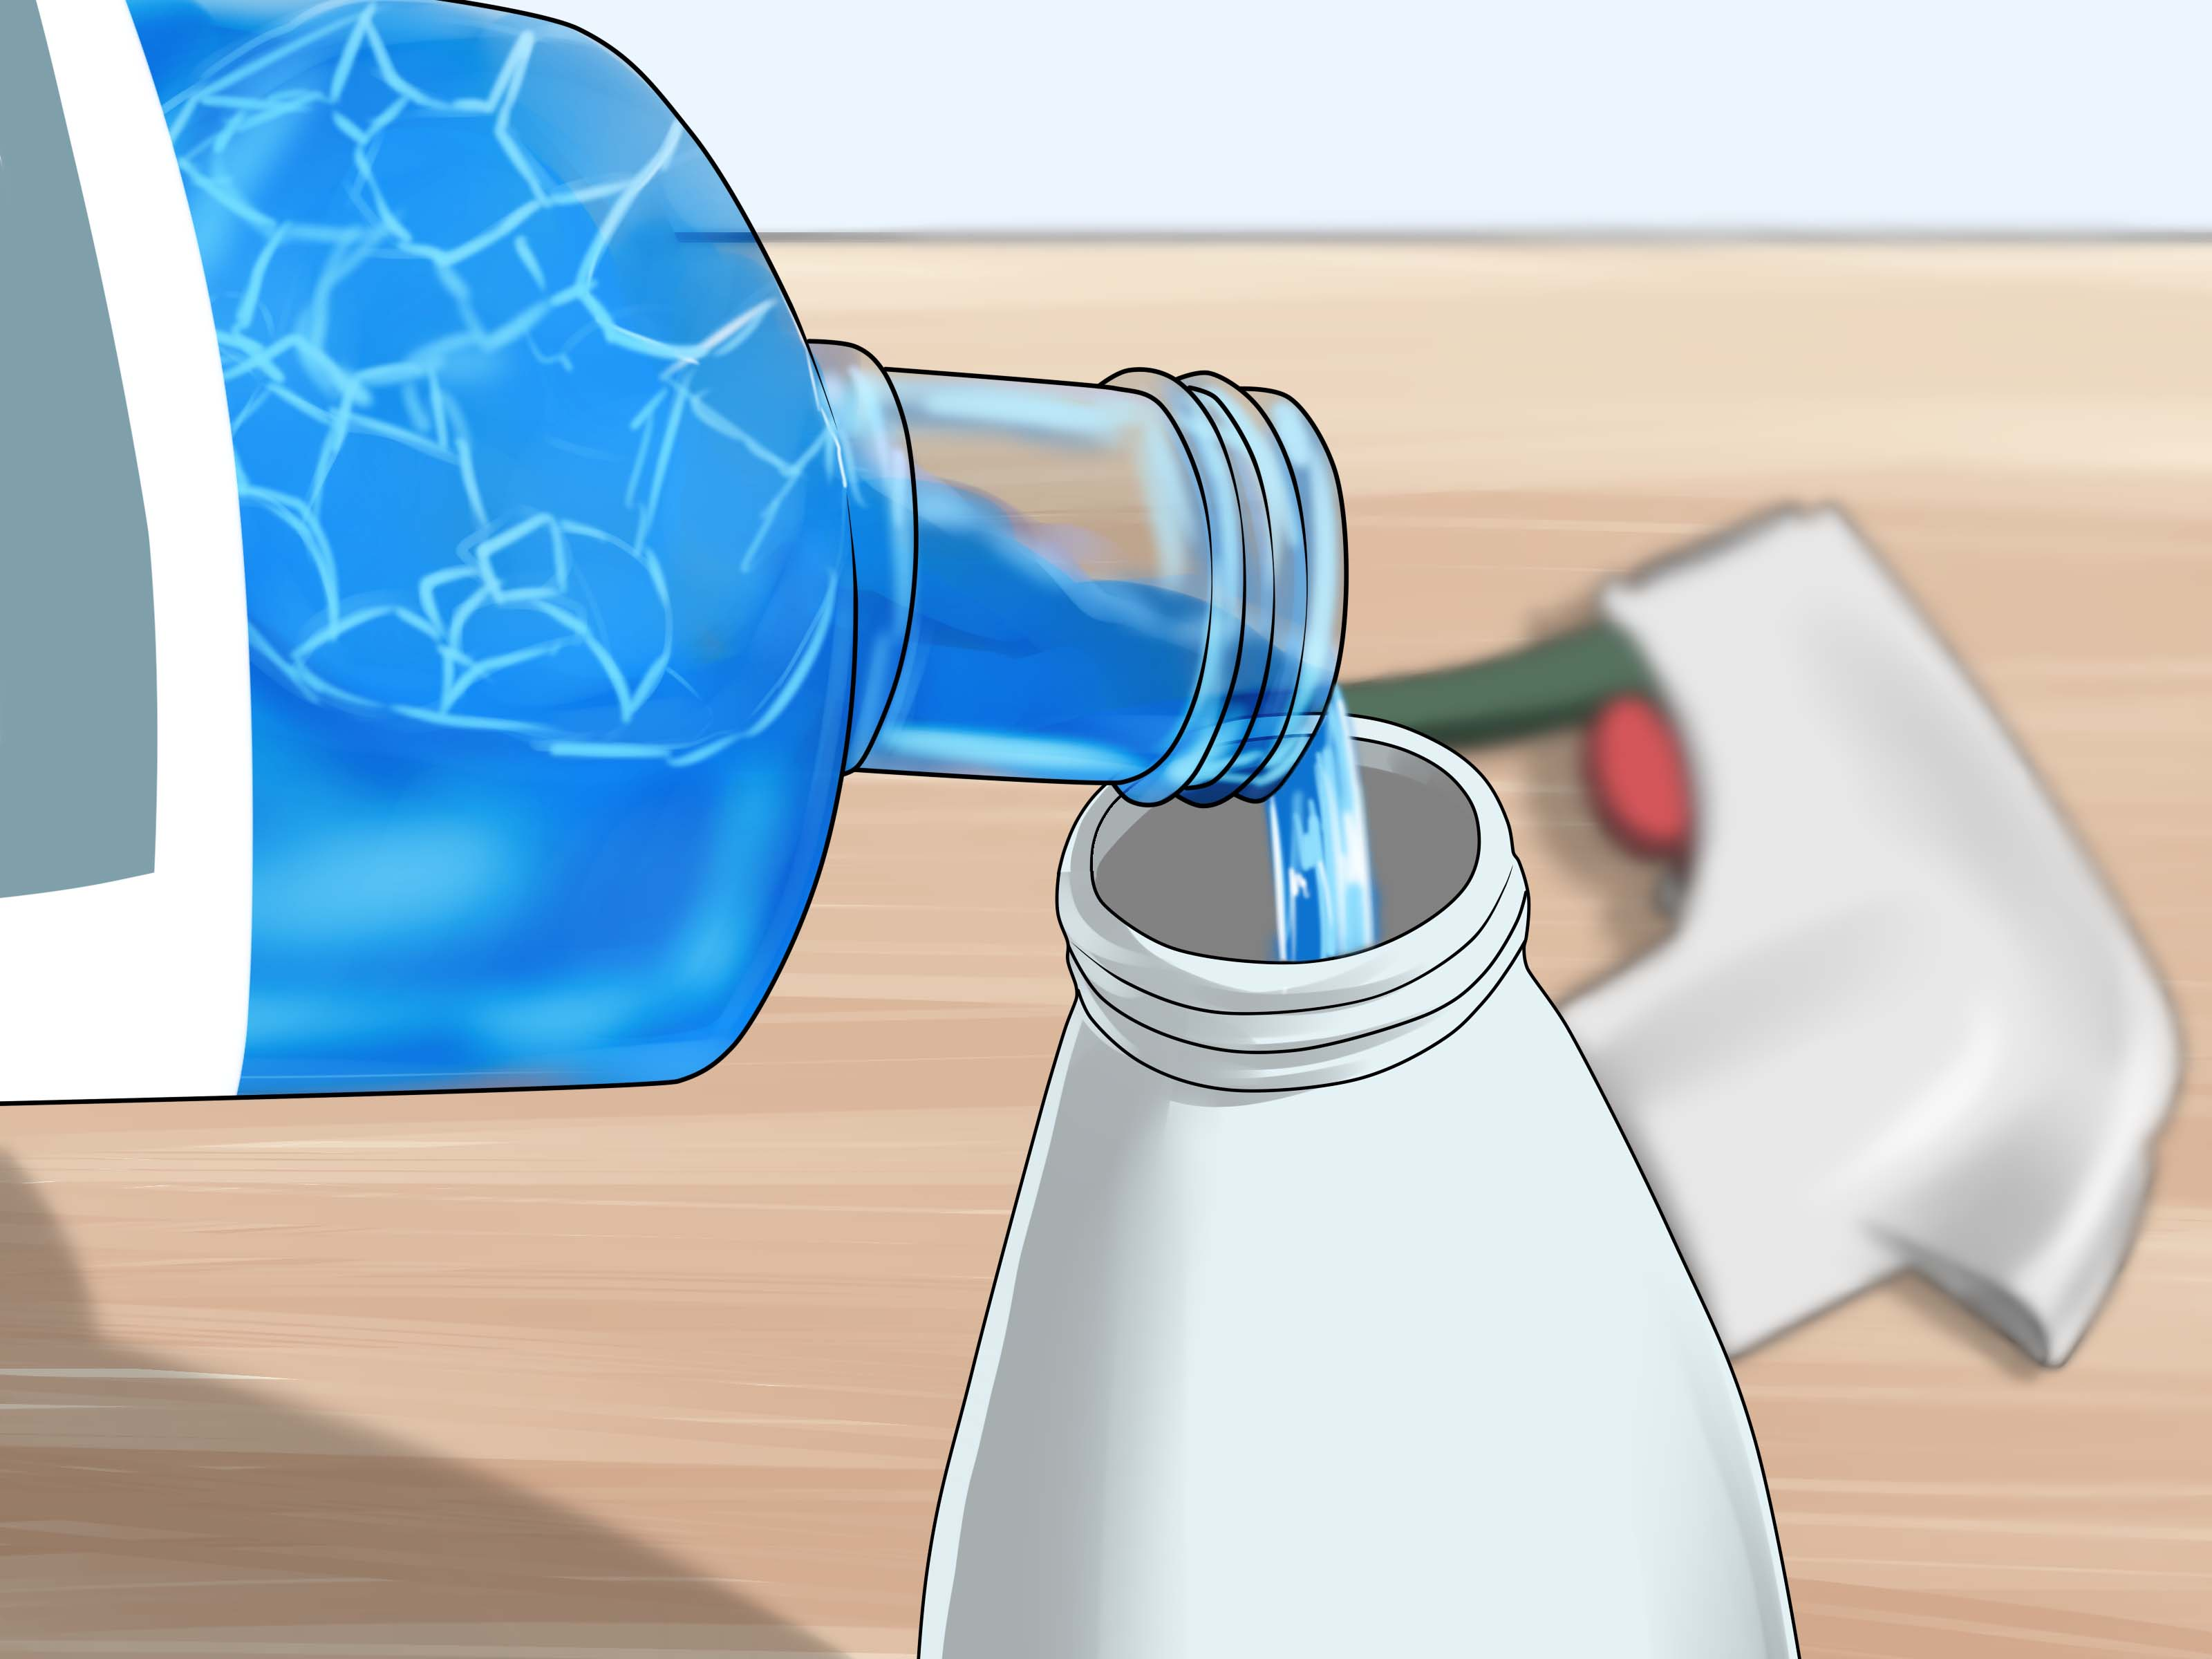 How To Get Urine Smell Out Of Clothes The 2 Best Ways To Remove The Smell Of Cat Or Dog Urine From